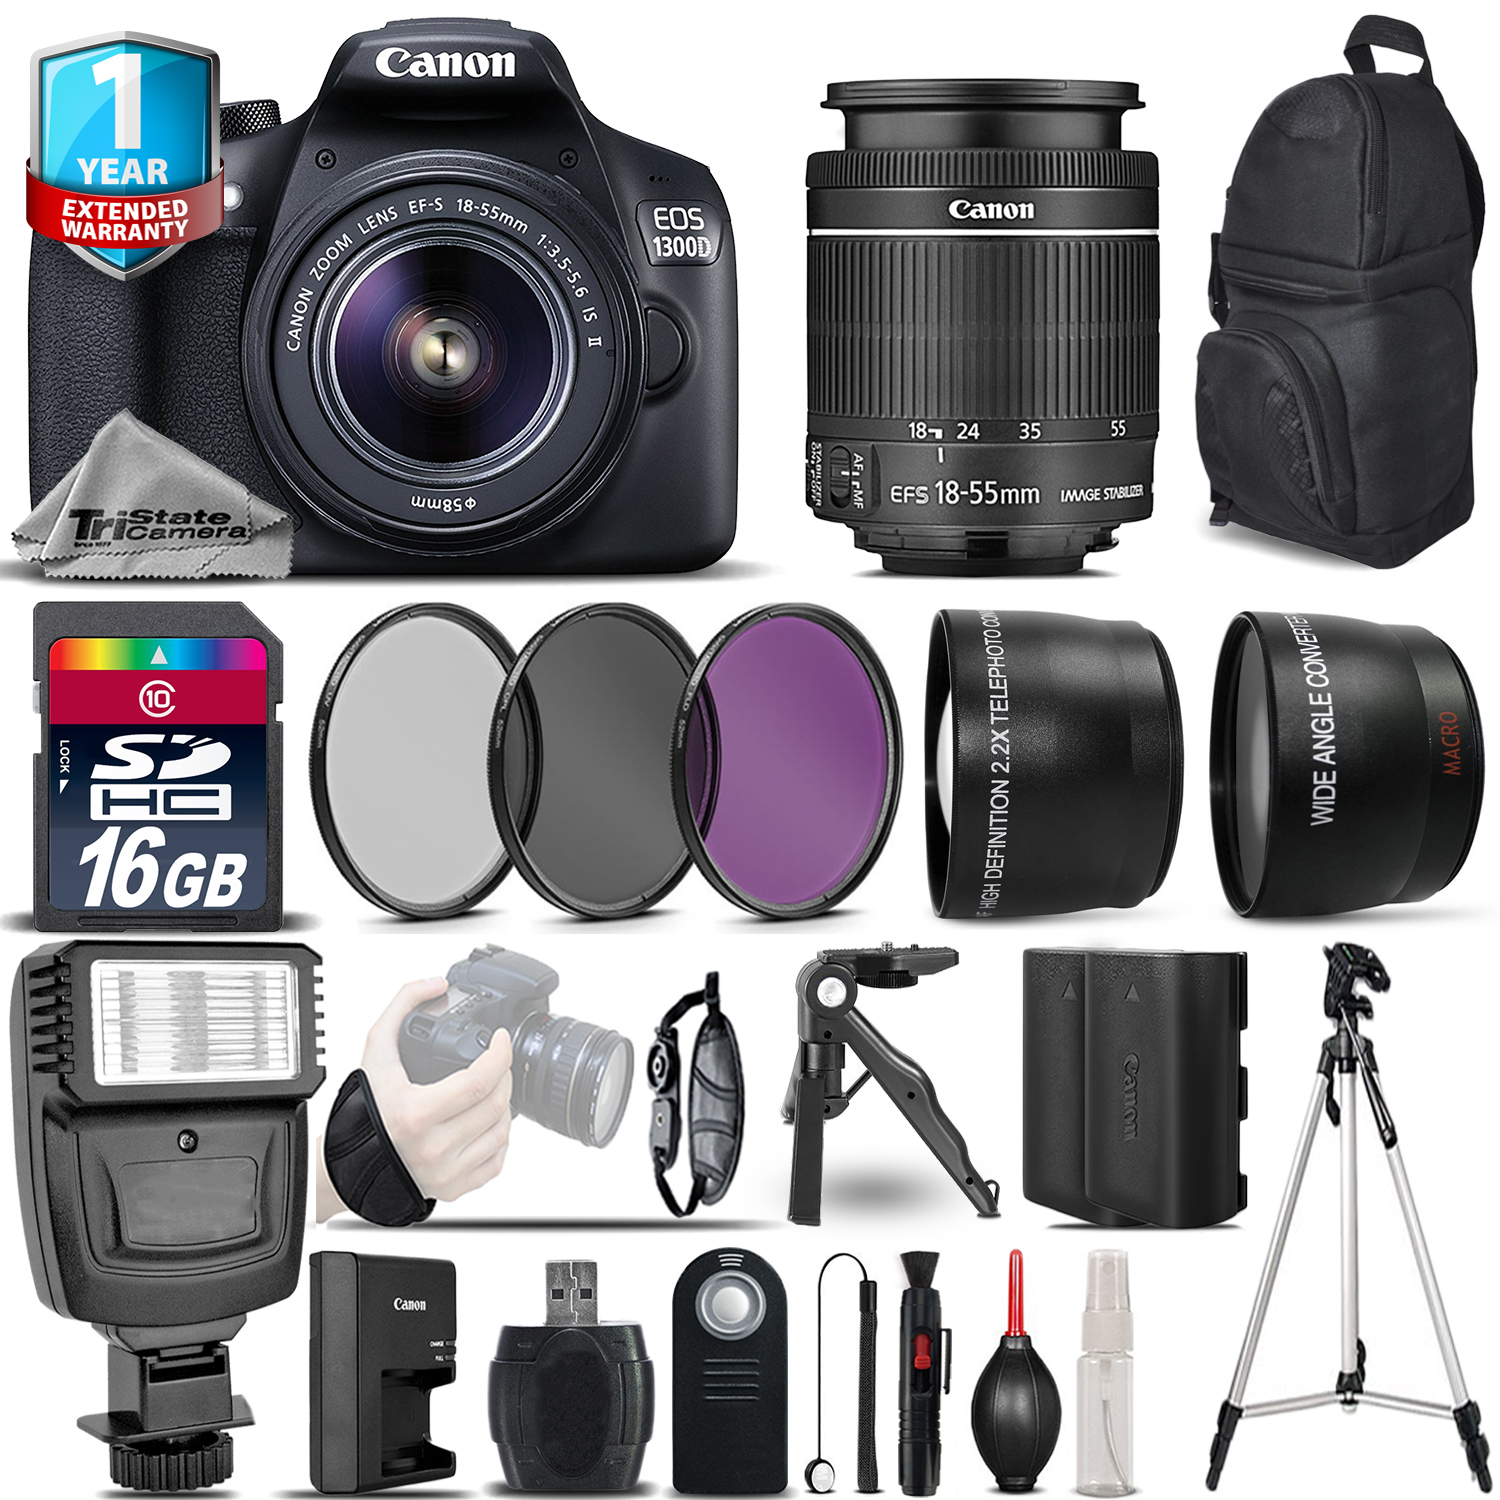 EOS Rebel 1300D / T6 Camera + 18-55mm IS II + 1yr Warranty - Saving Bundle *FREE SHIPPING*